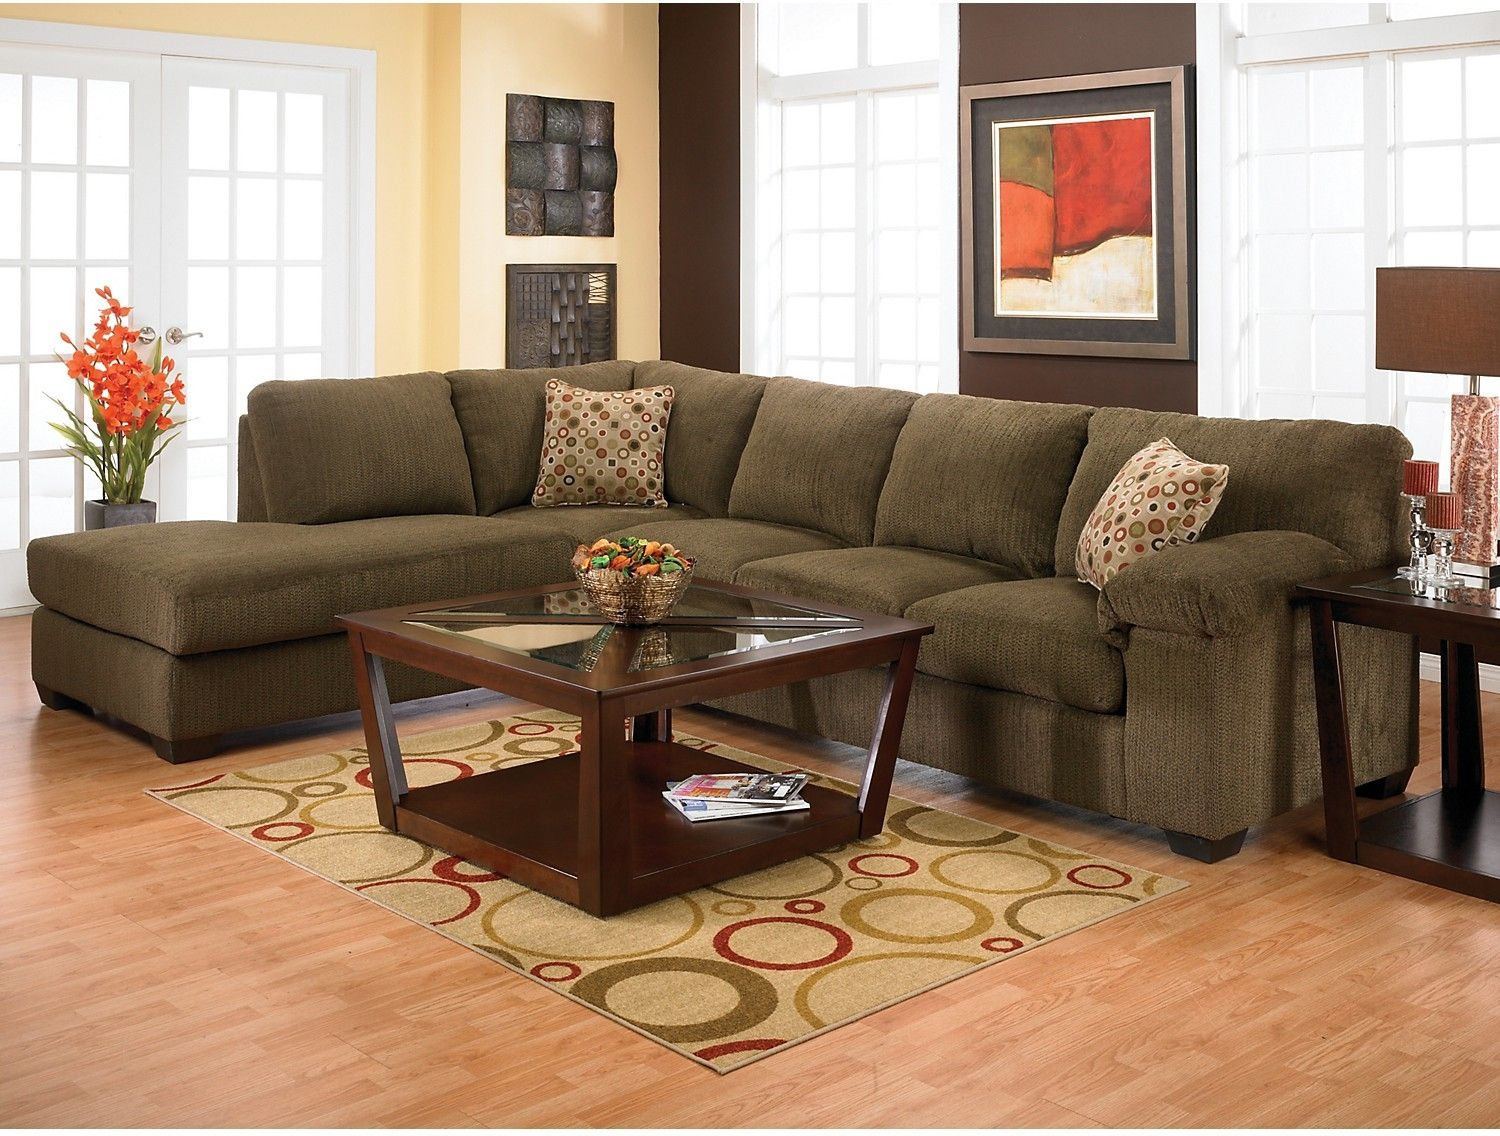 Chenille Sectional Sofa In 2020 Sectional Sofa With Chaise Contemporary Living Room Sectional Apartment Size Sofa